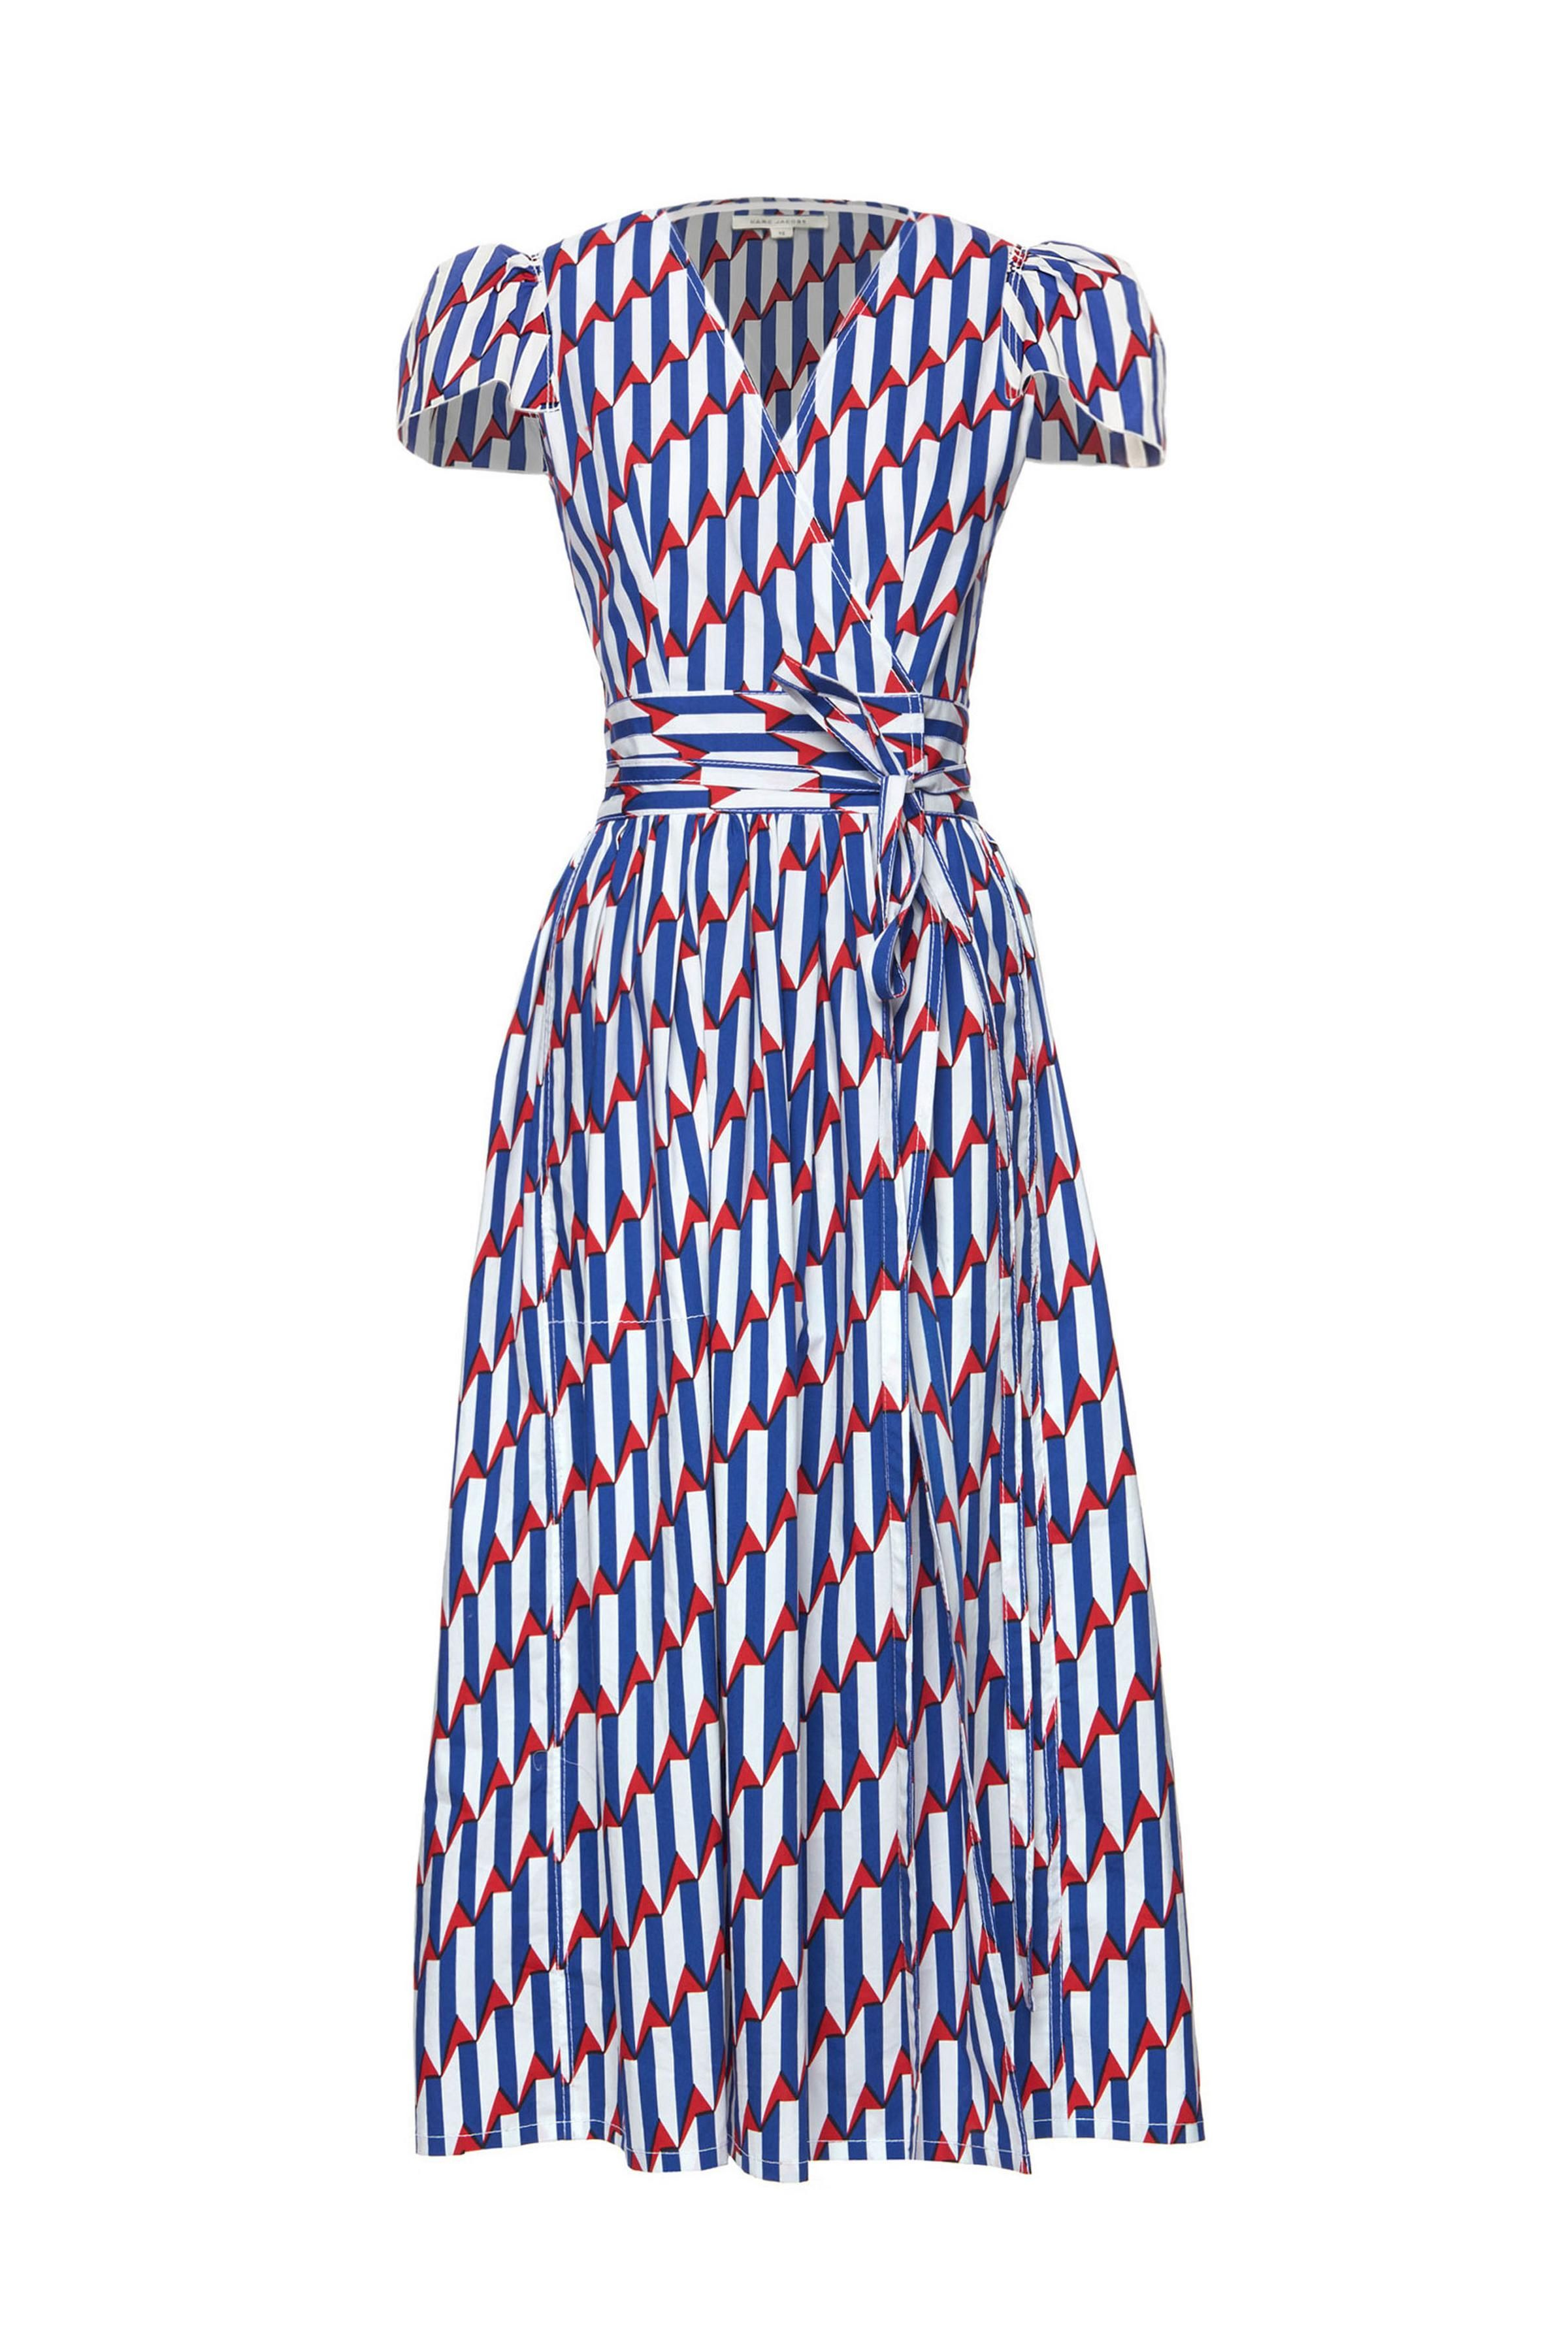 3452528db84 The Marc Jacobs Arrow Print Poplin Dress is made from cotton poplin with  stretch and features a red, white and blue print inspired by this season's  ...